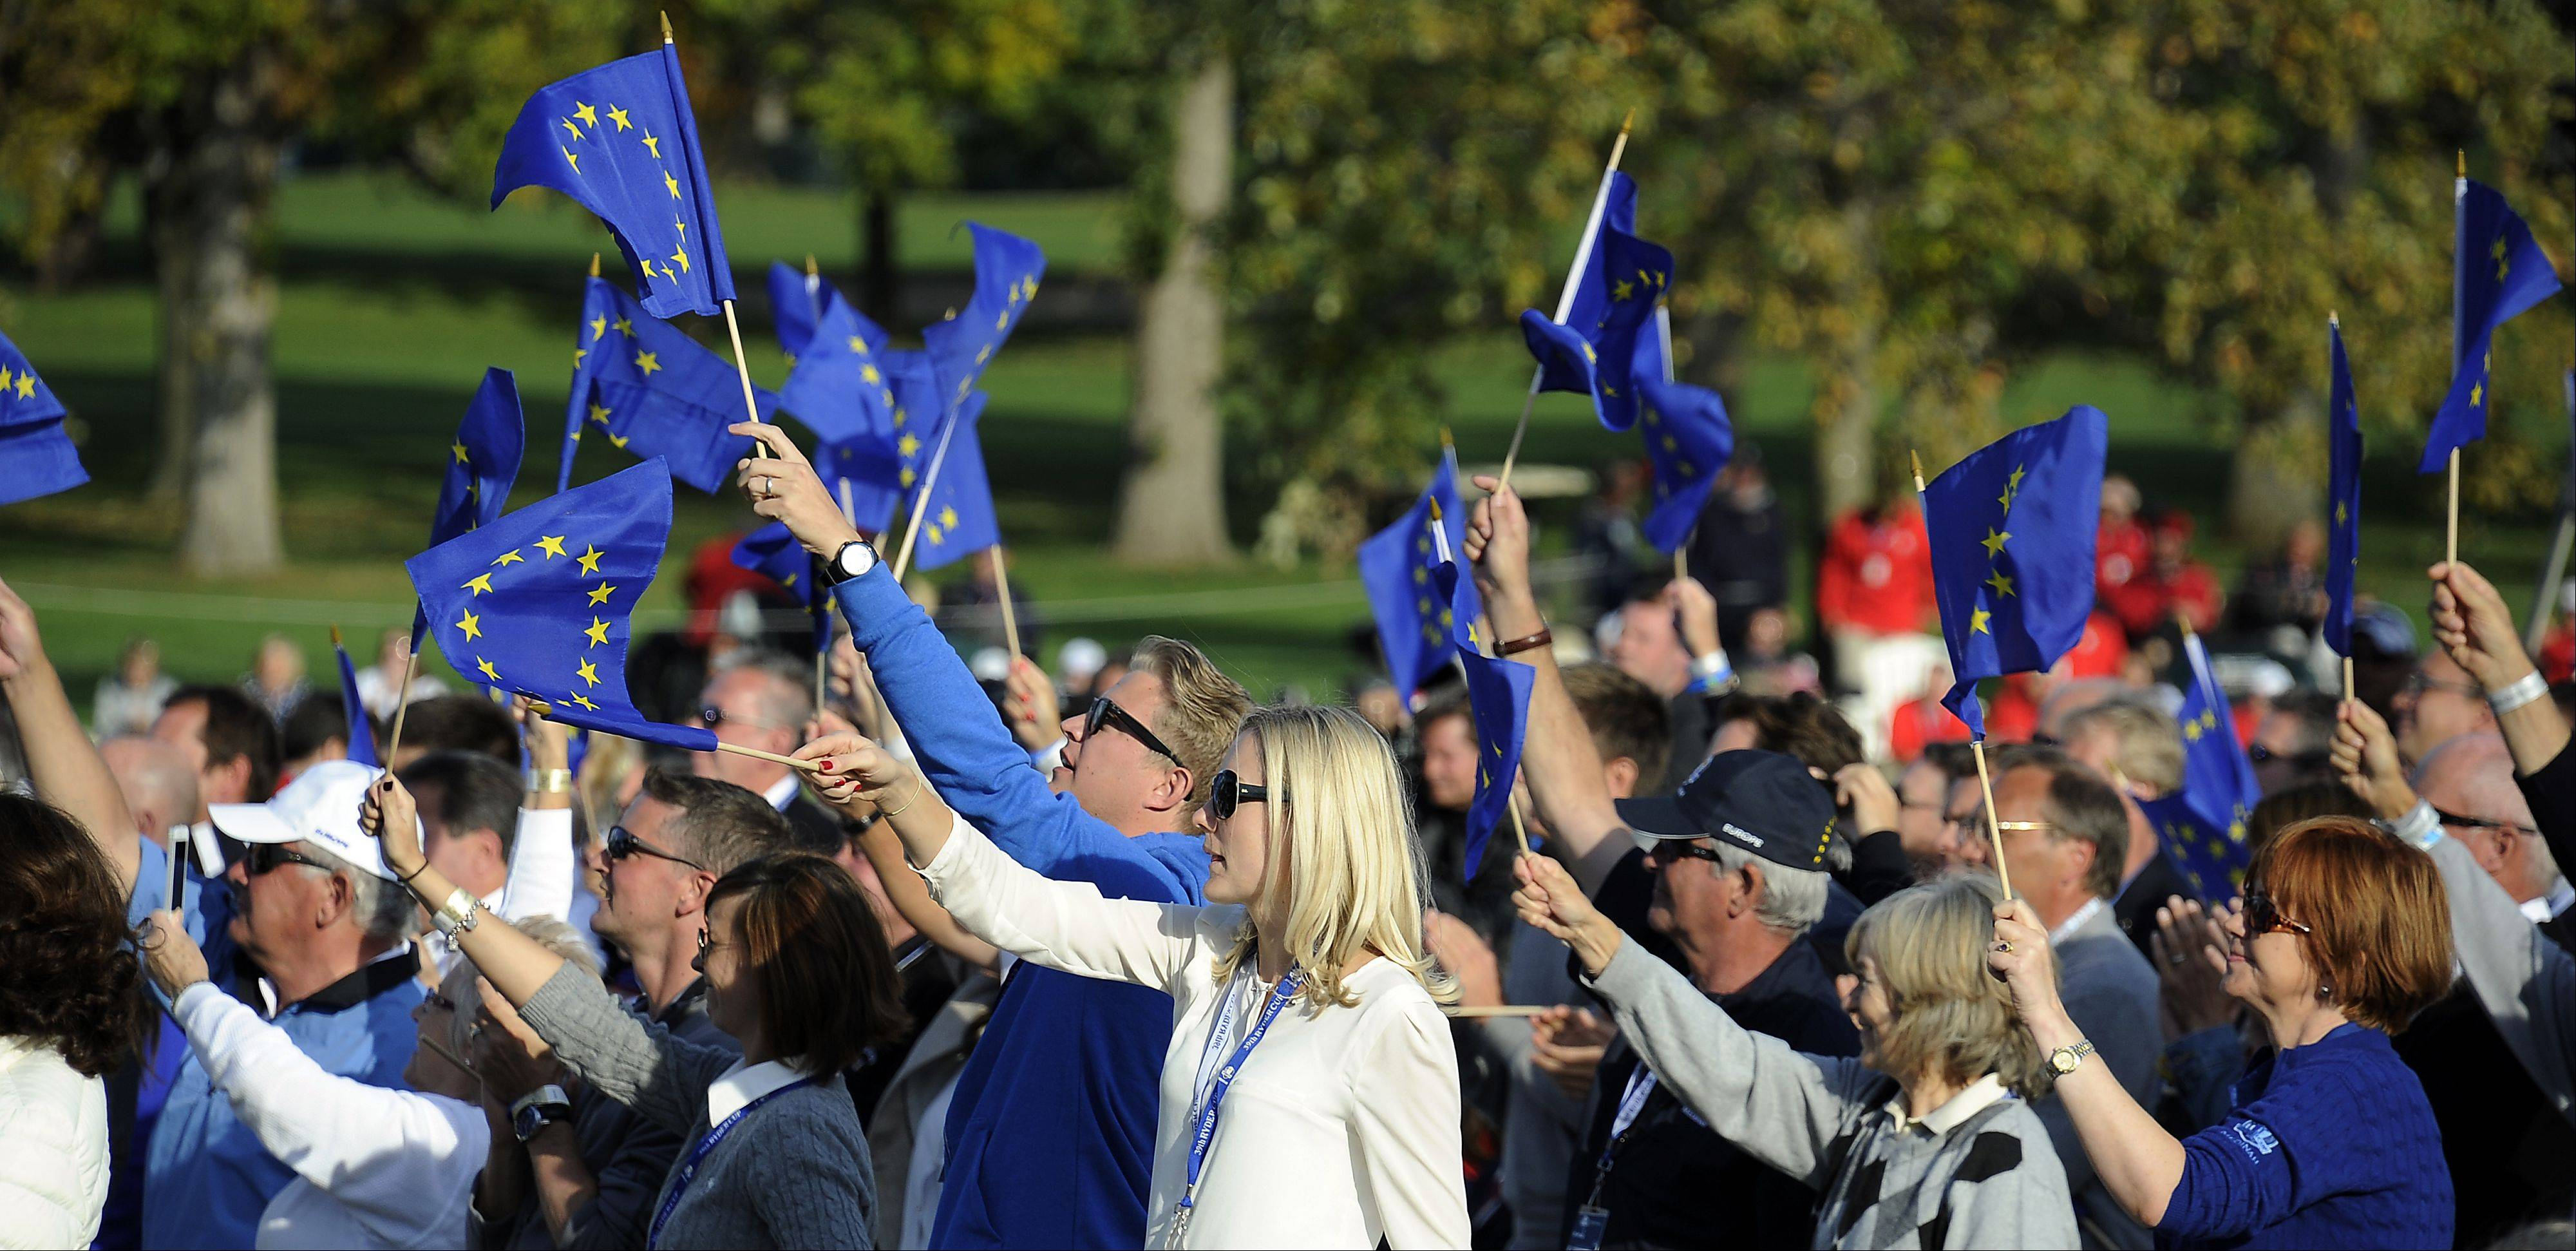 Team Europe's fans cheer and wave flags.